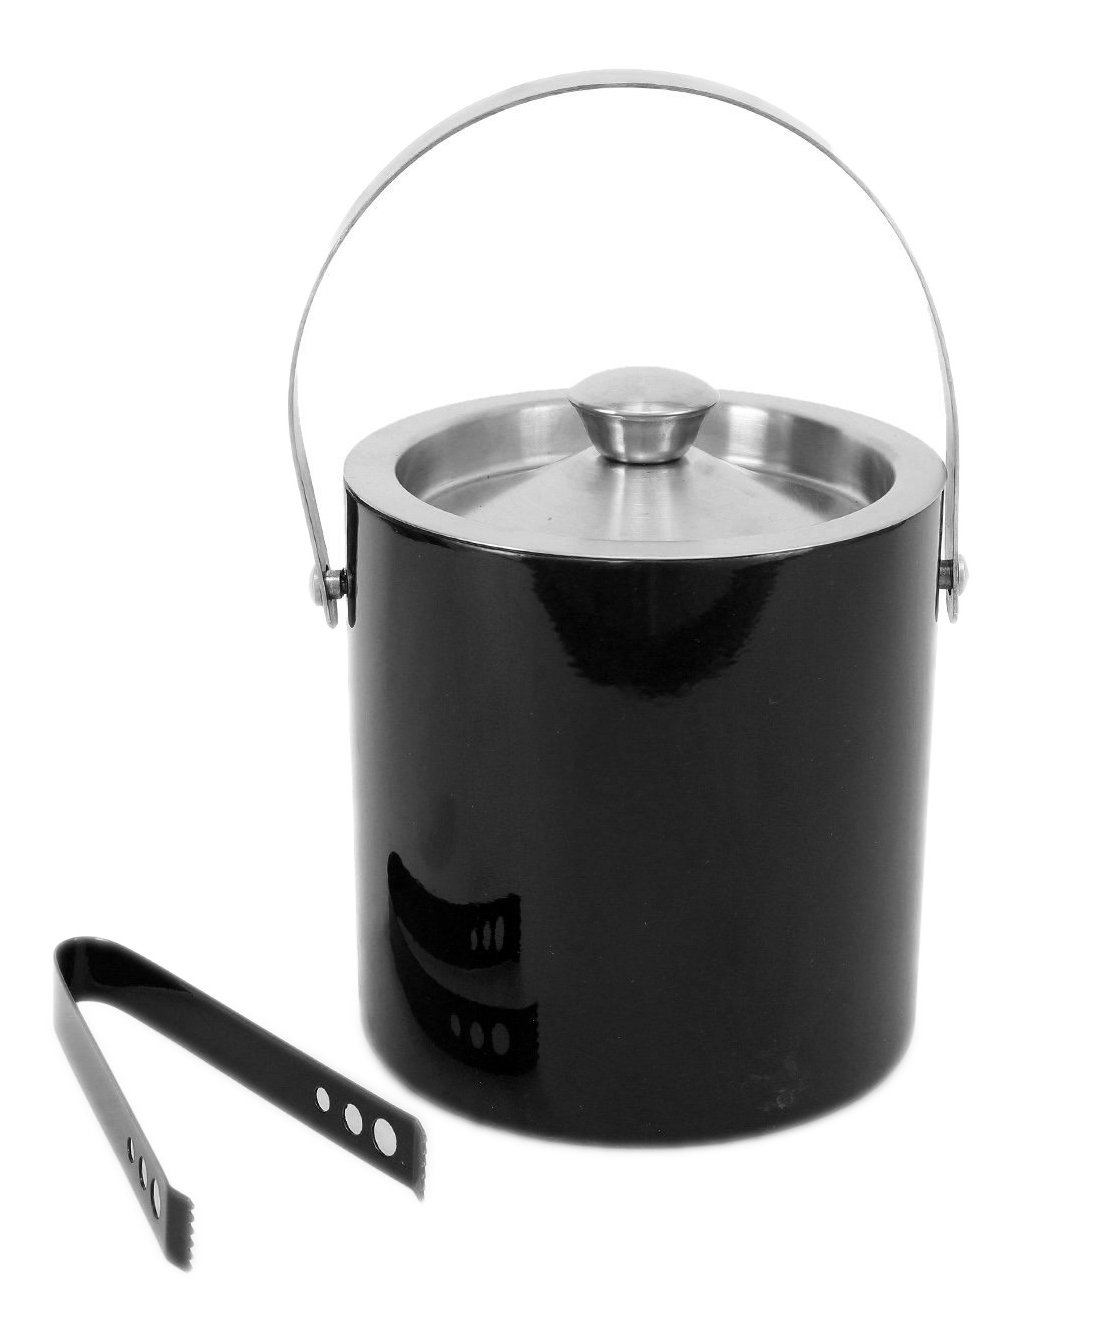 STREET CRAFT Stainless Steel Double Wall Insulated Black Ice Bucket with Air Lock Lid and tong Capacity 1750 ML by STREET CRAFT